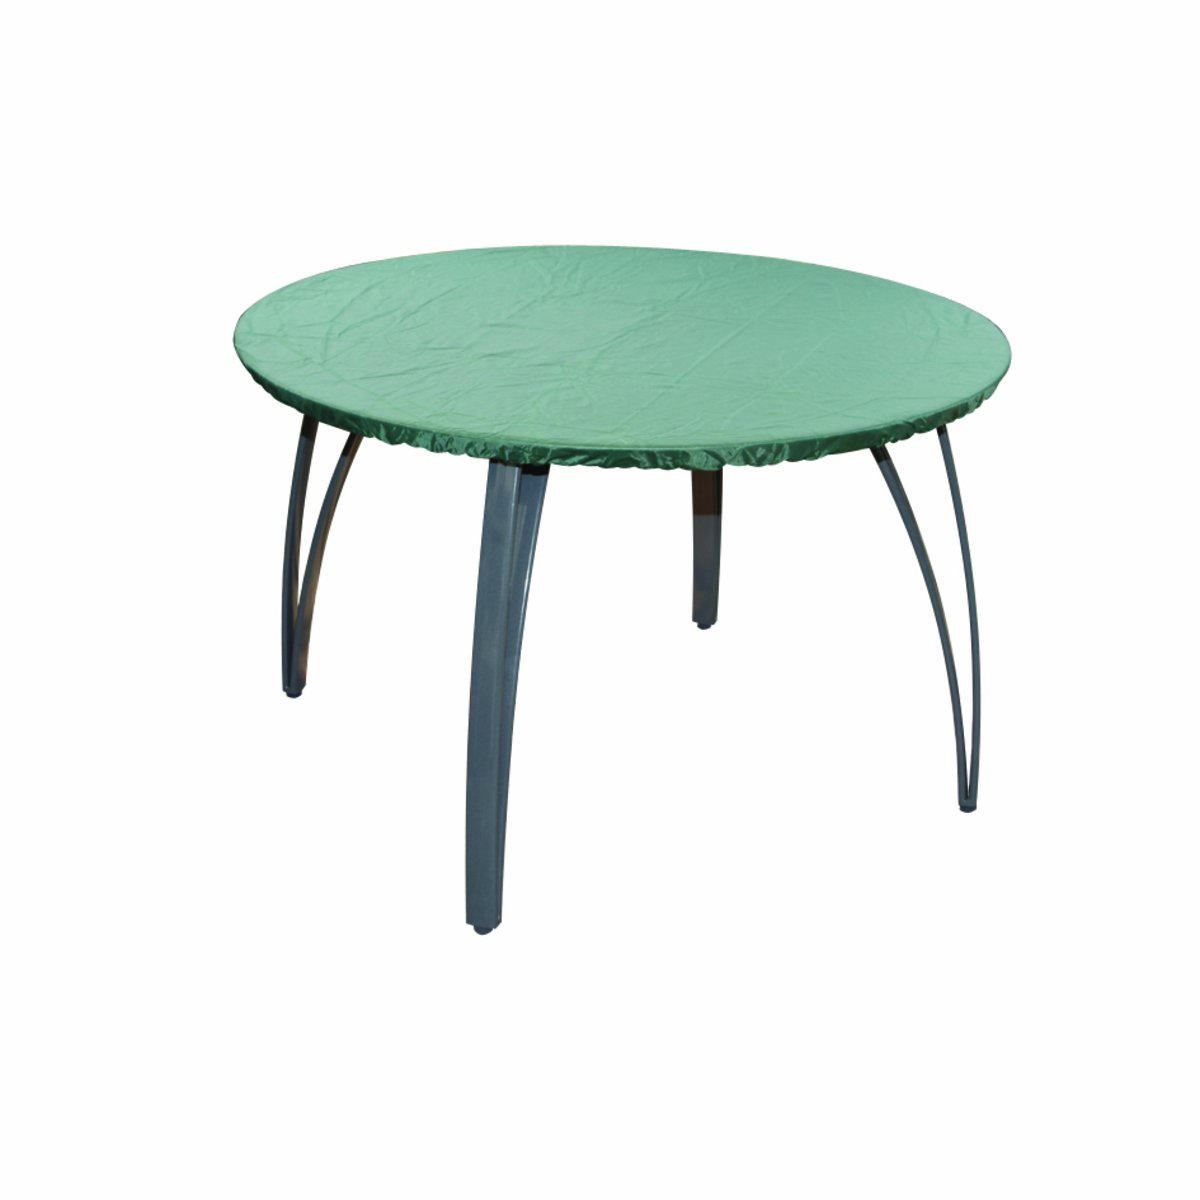 Bosmere C547 4 6 Seat Circular Table Top Cover  Amazon co uk  Garden    Outdoors. Bosmere C547 4 6 Seat Circular Table Top Cover  Amazon co uk